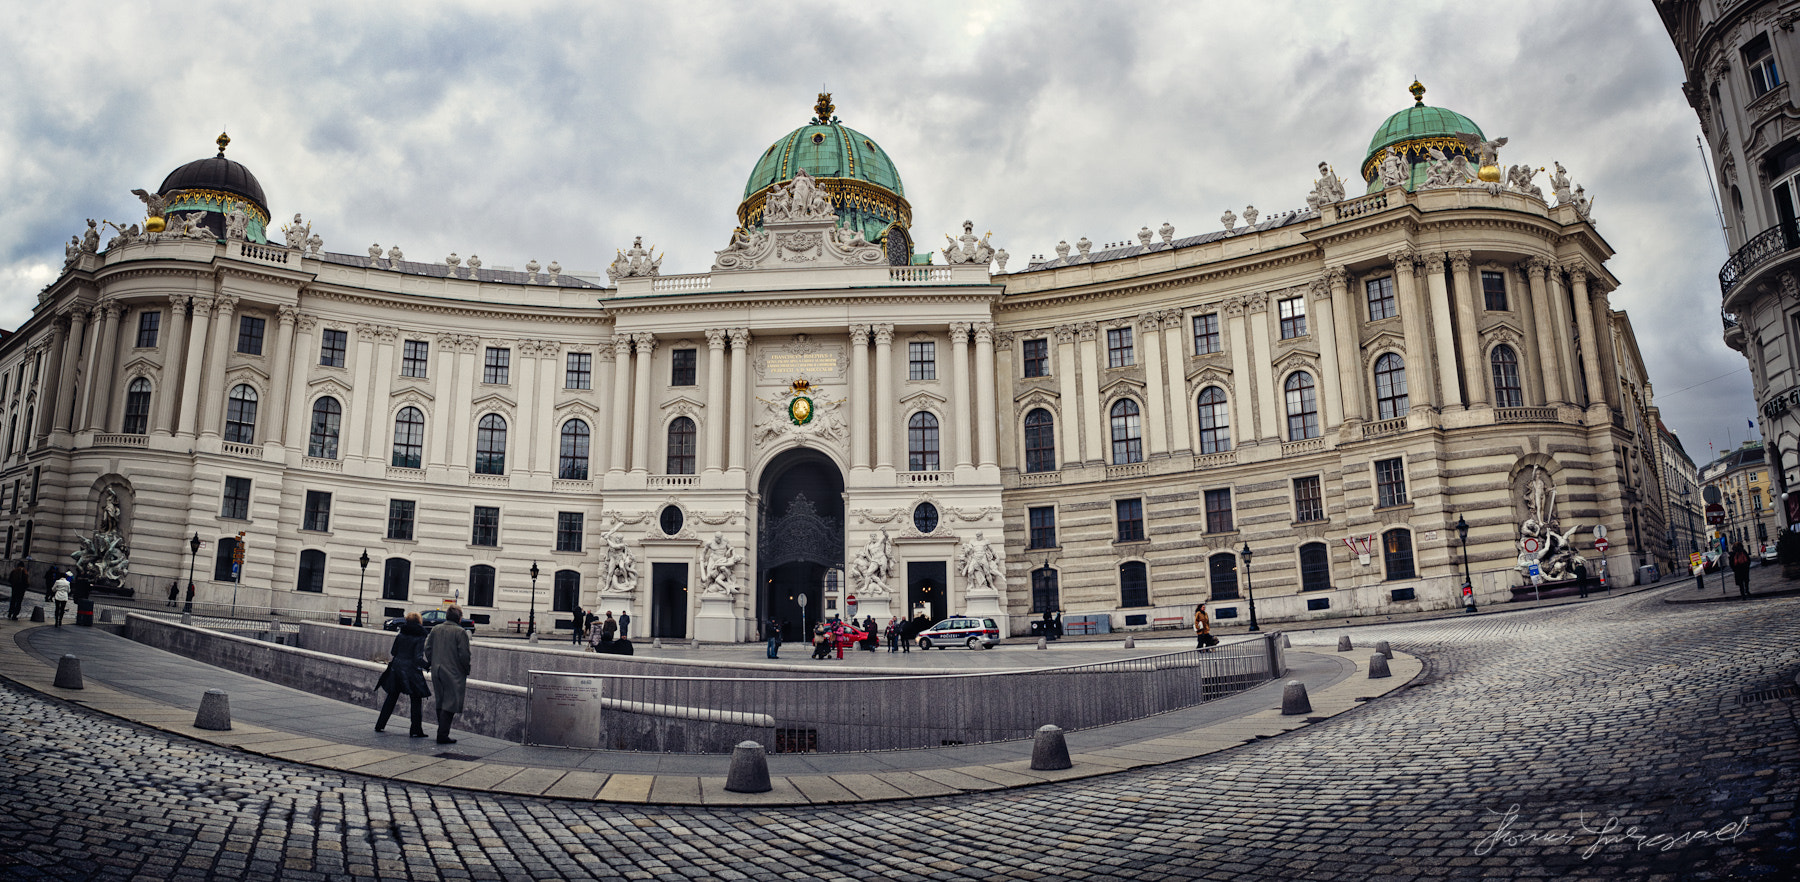 Photograph Palace in Vienna by Thomas Fitzgerald on 500px